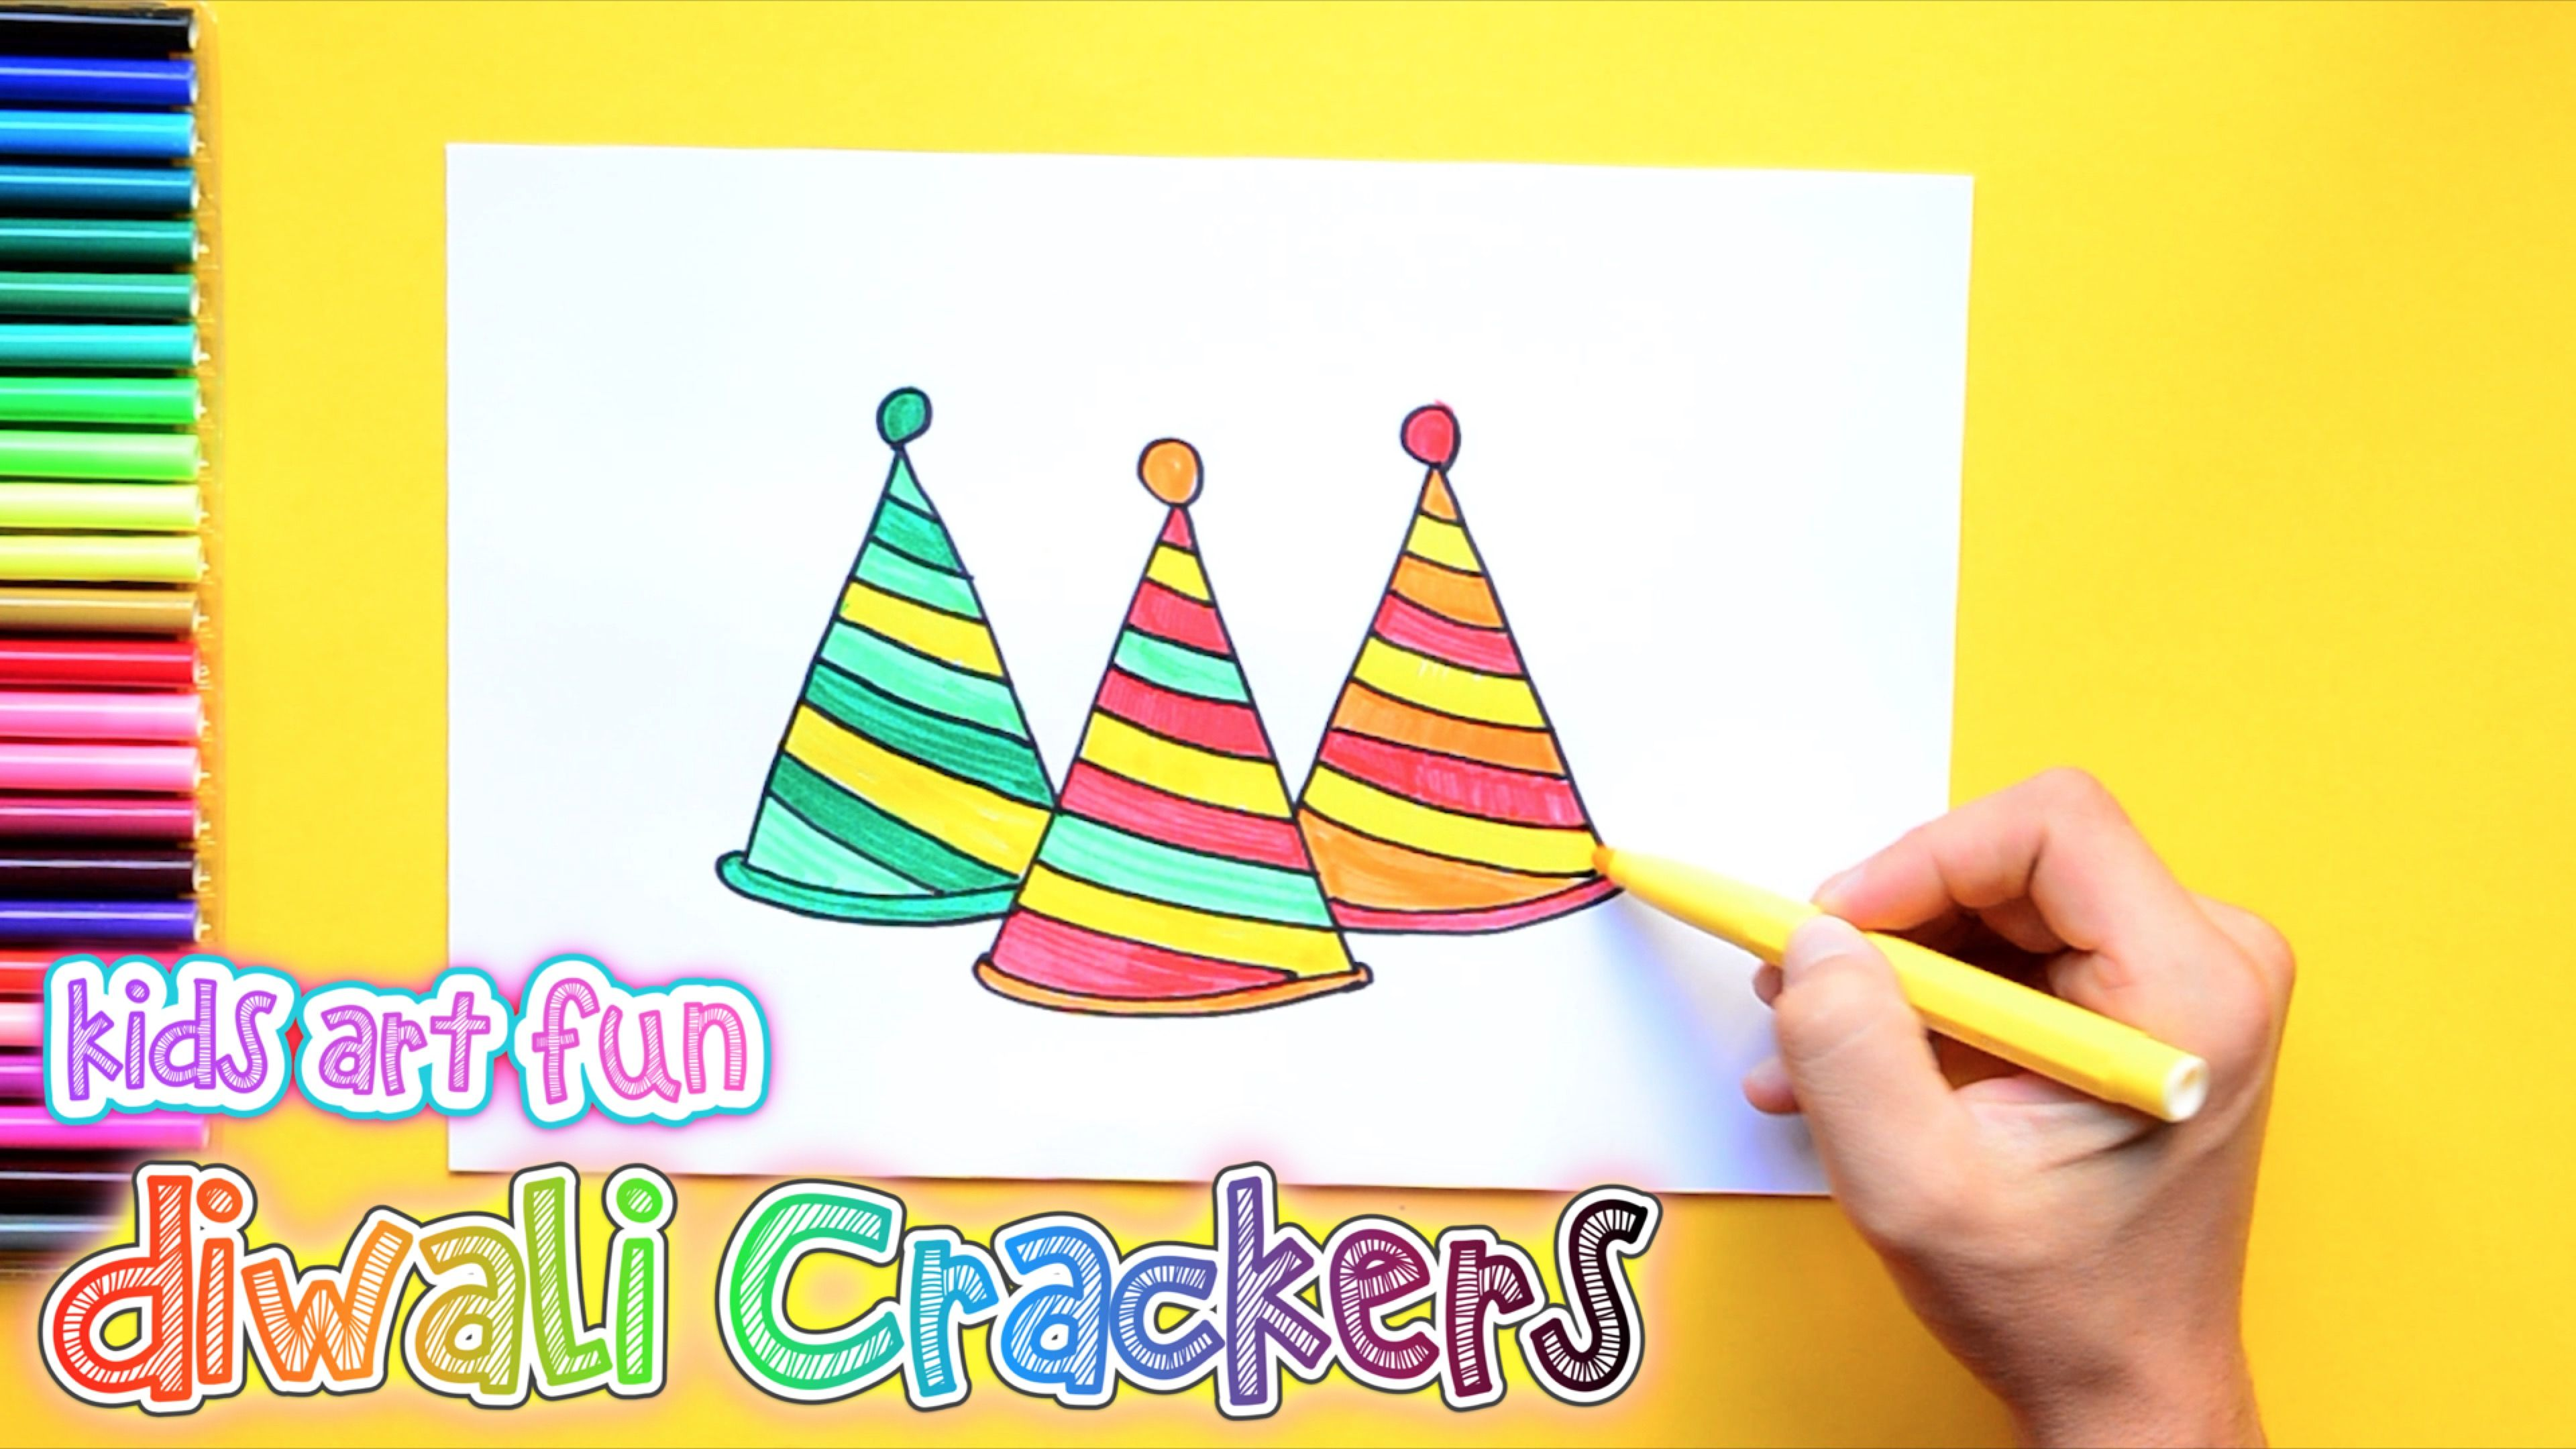 How to draw and color Diwali Crackers Anar or Flower Pot